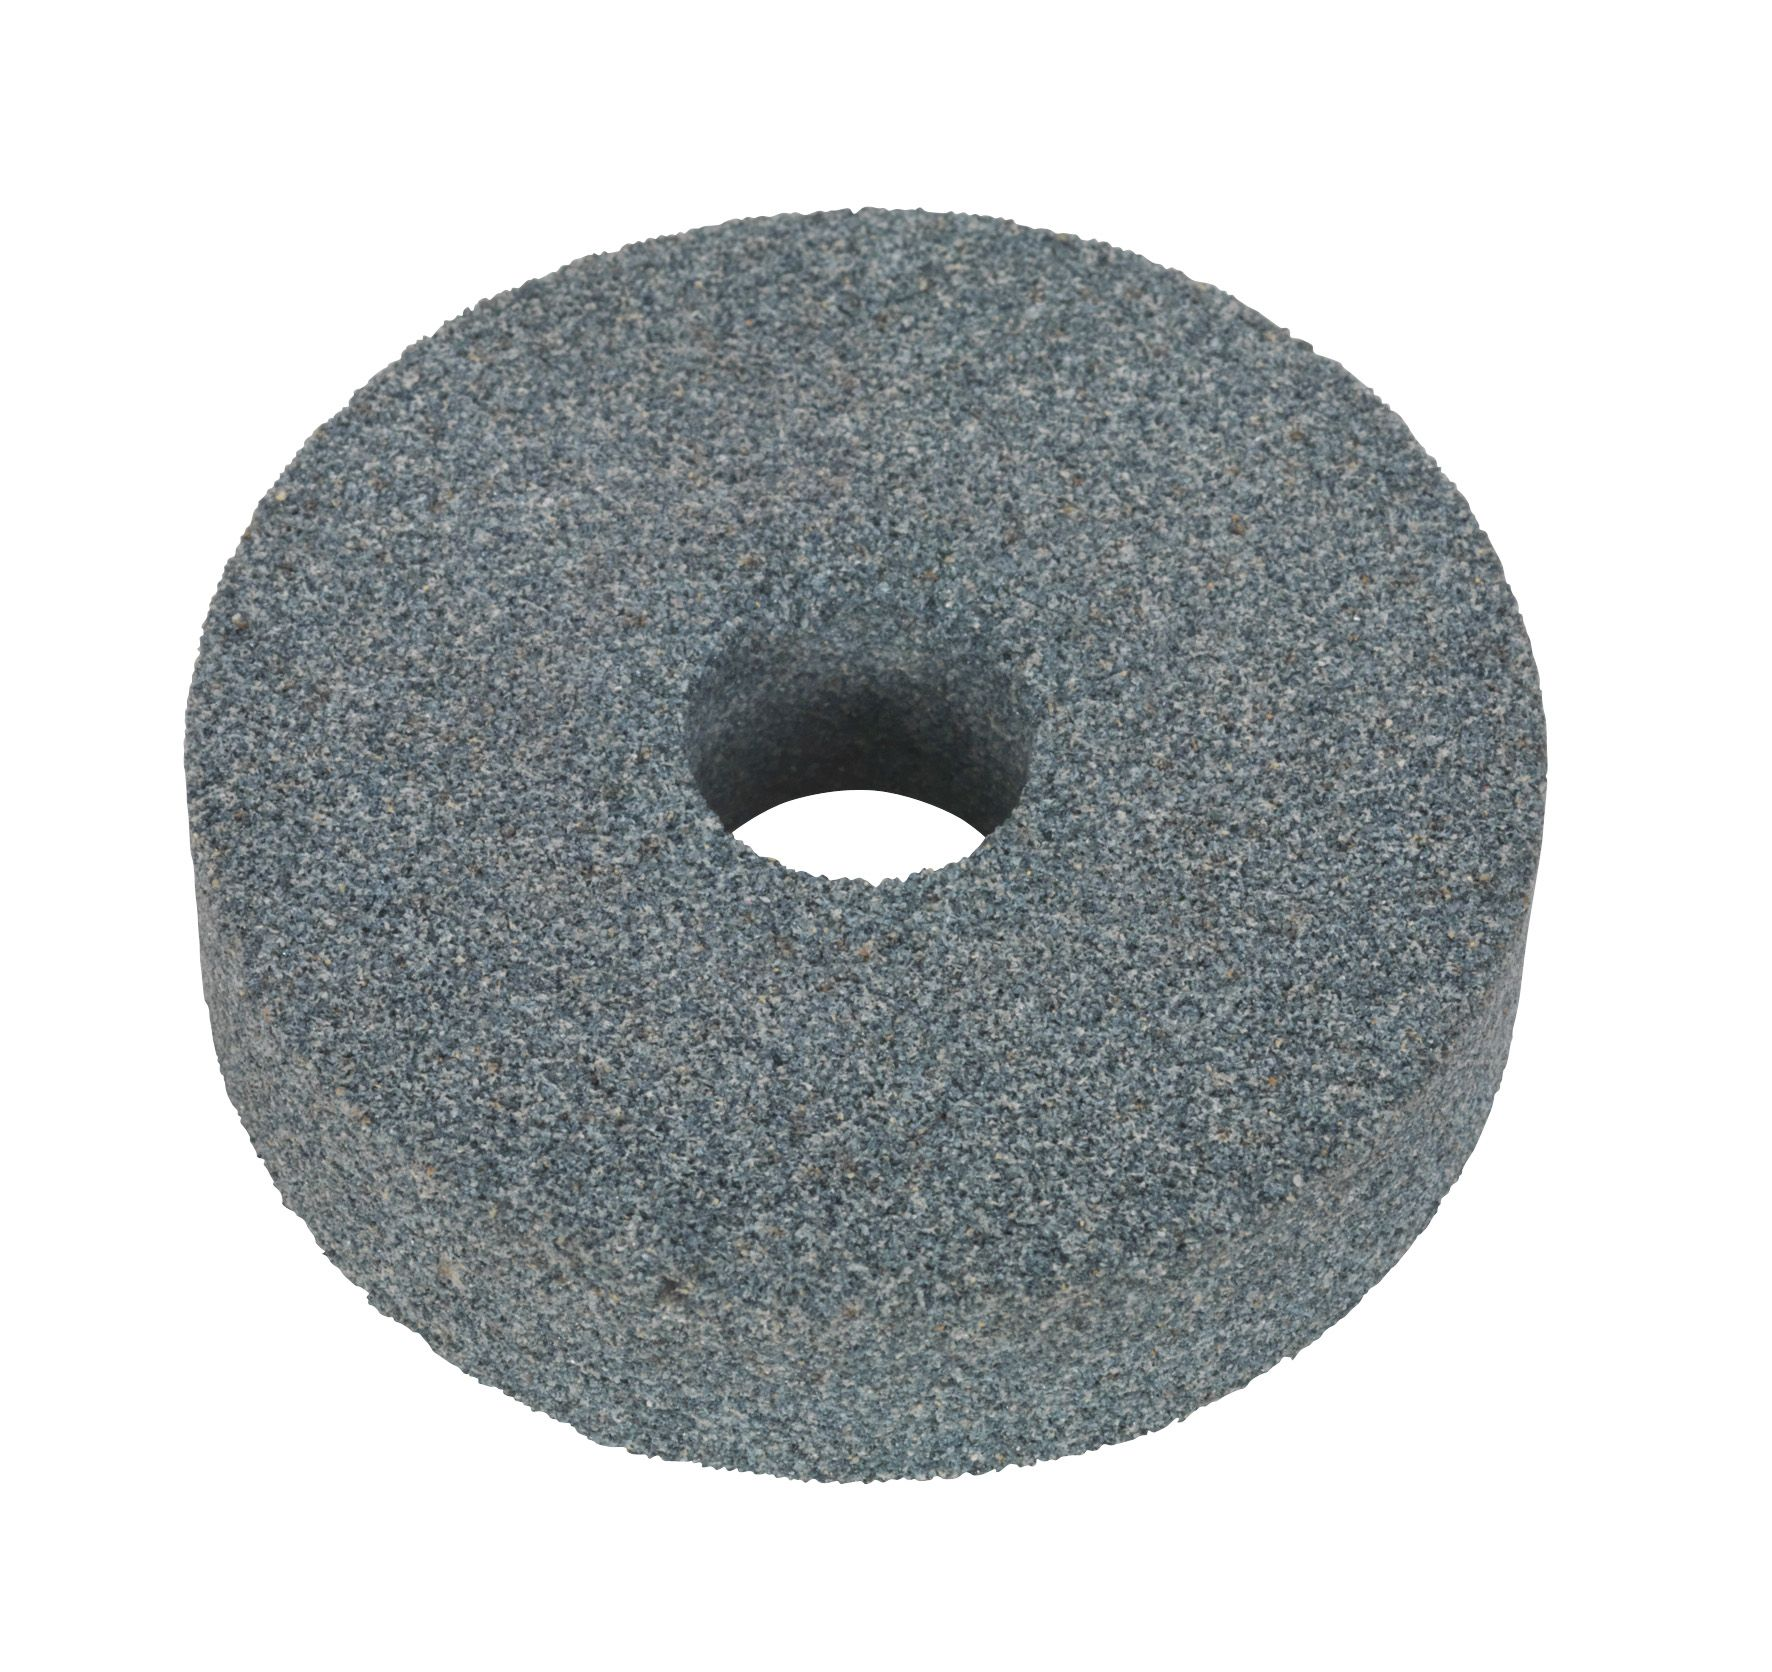 Sealey Grinding Wheel Ø50 x 13mm 13mm Bore Coarse